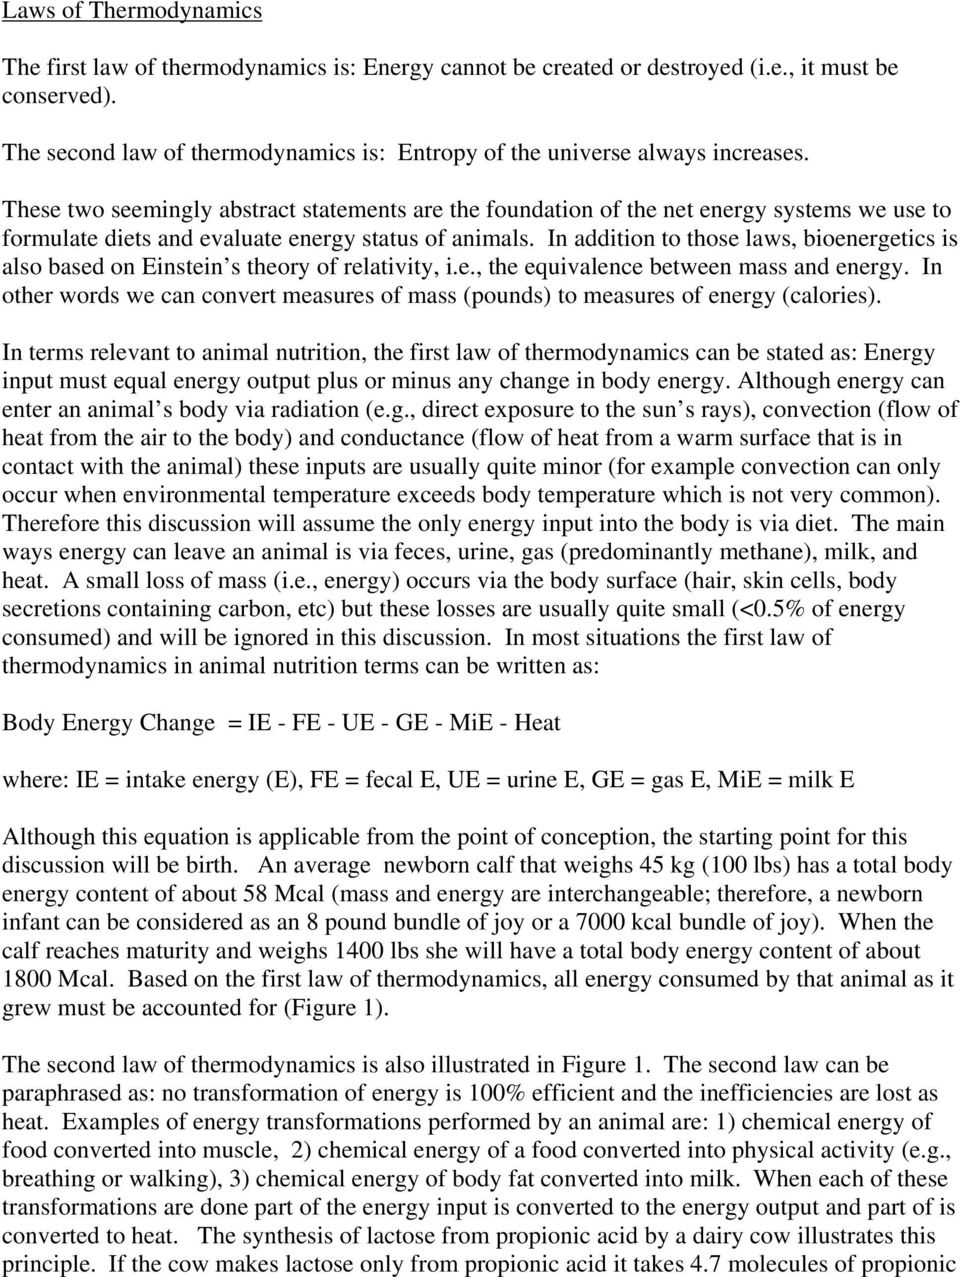 These two seemingly abstract statements are the foundation of the net energy systems we use to formulate diets and evaluate energy status of animals.